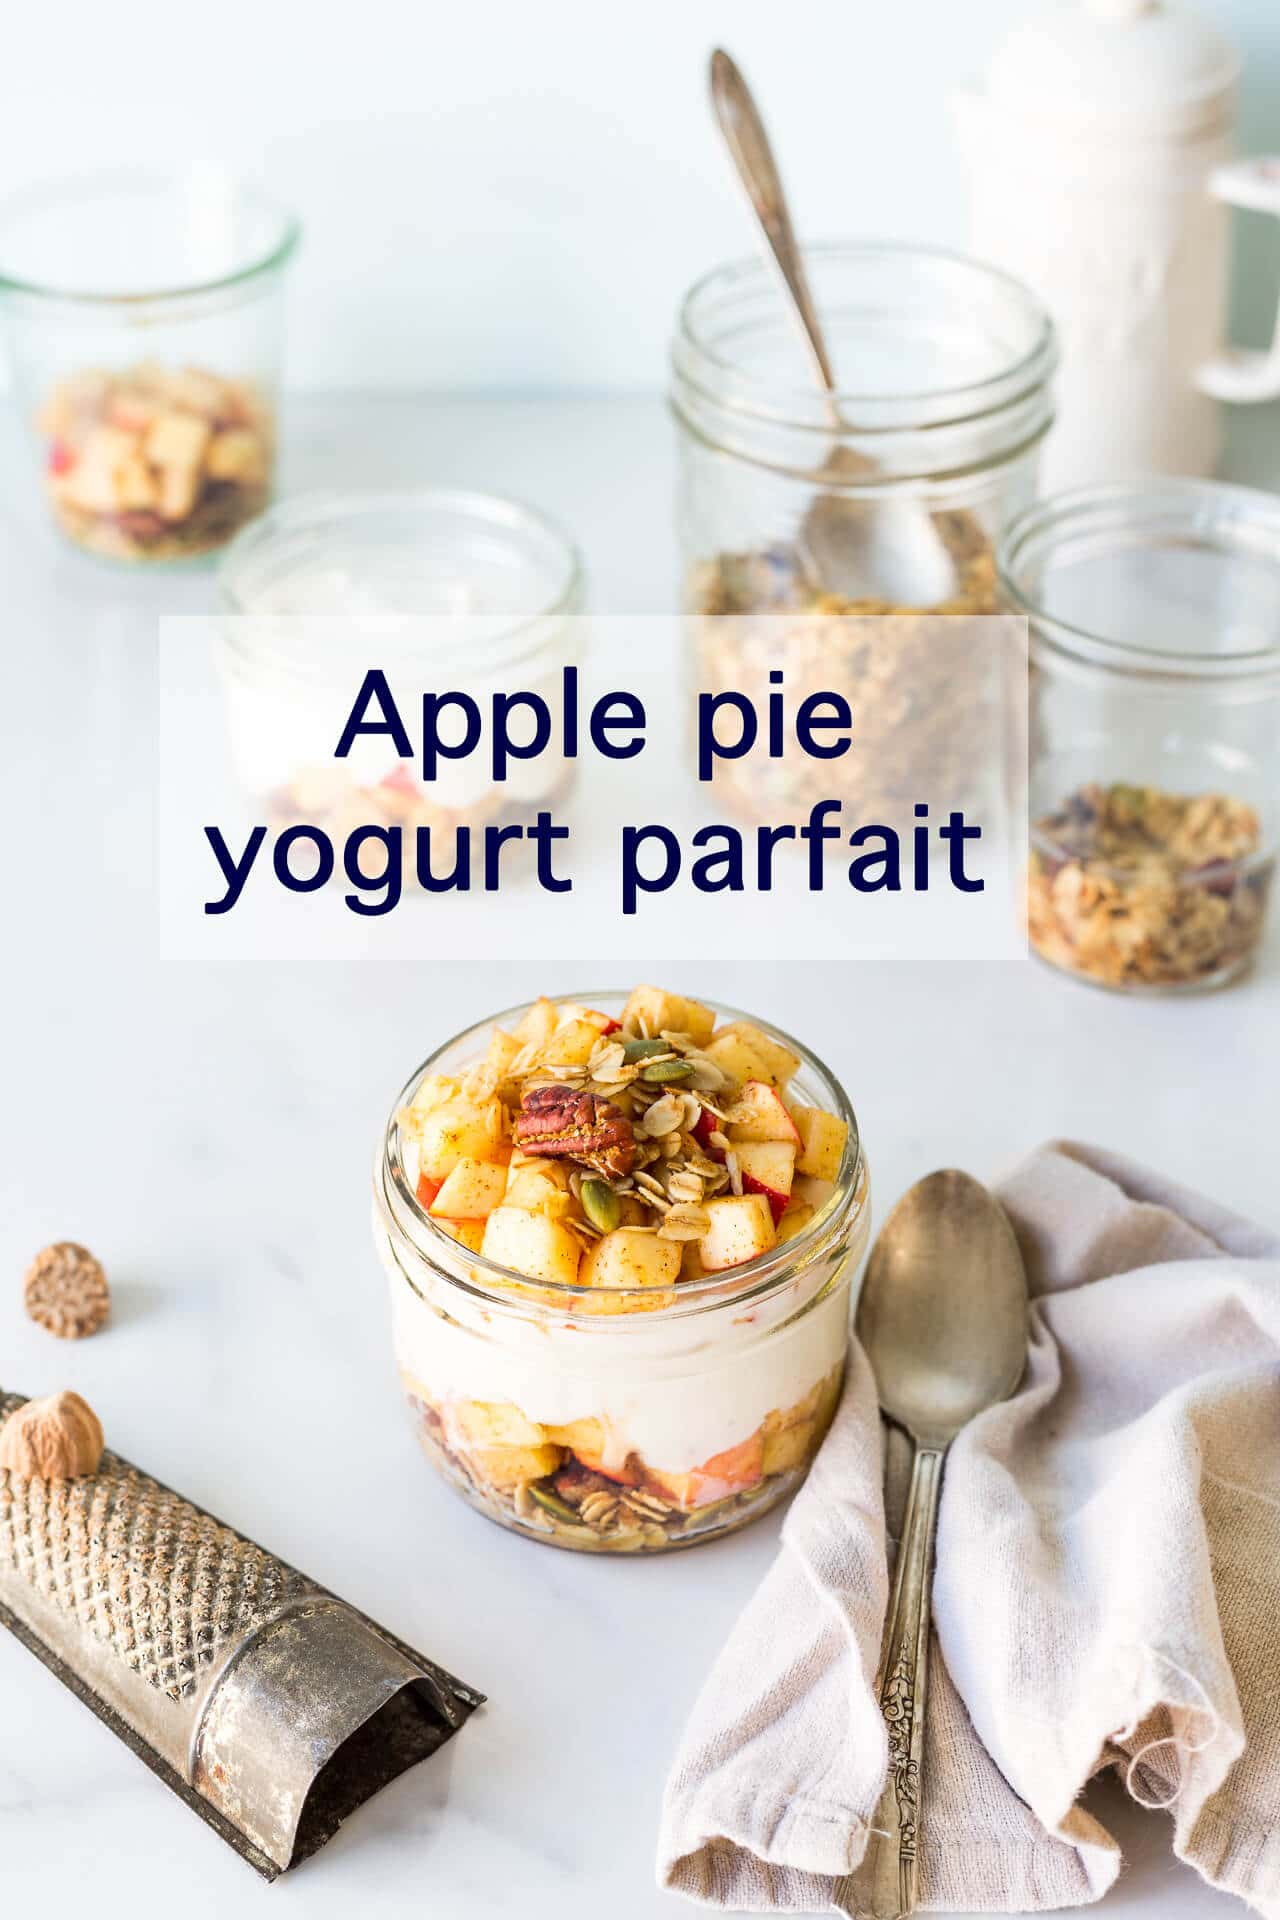 Apple pie parfait made in a jar with layers of yogurt, spiced diced fresh apple, and granola, eaten with a spoon and served with freshly grated nutmeg